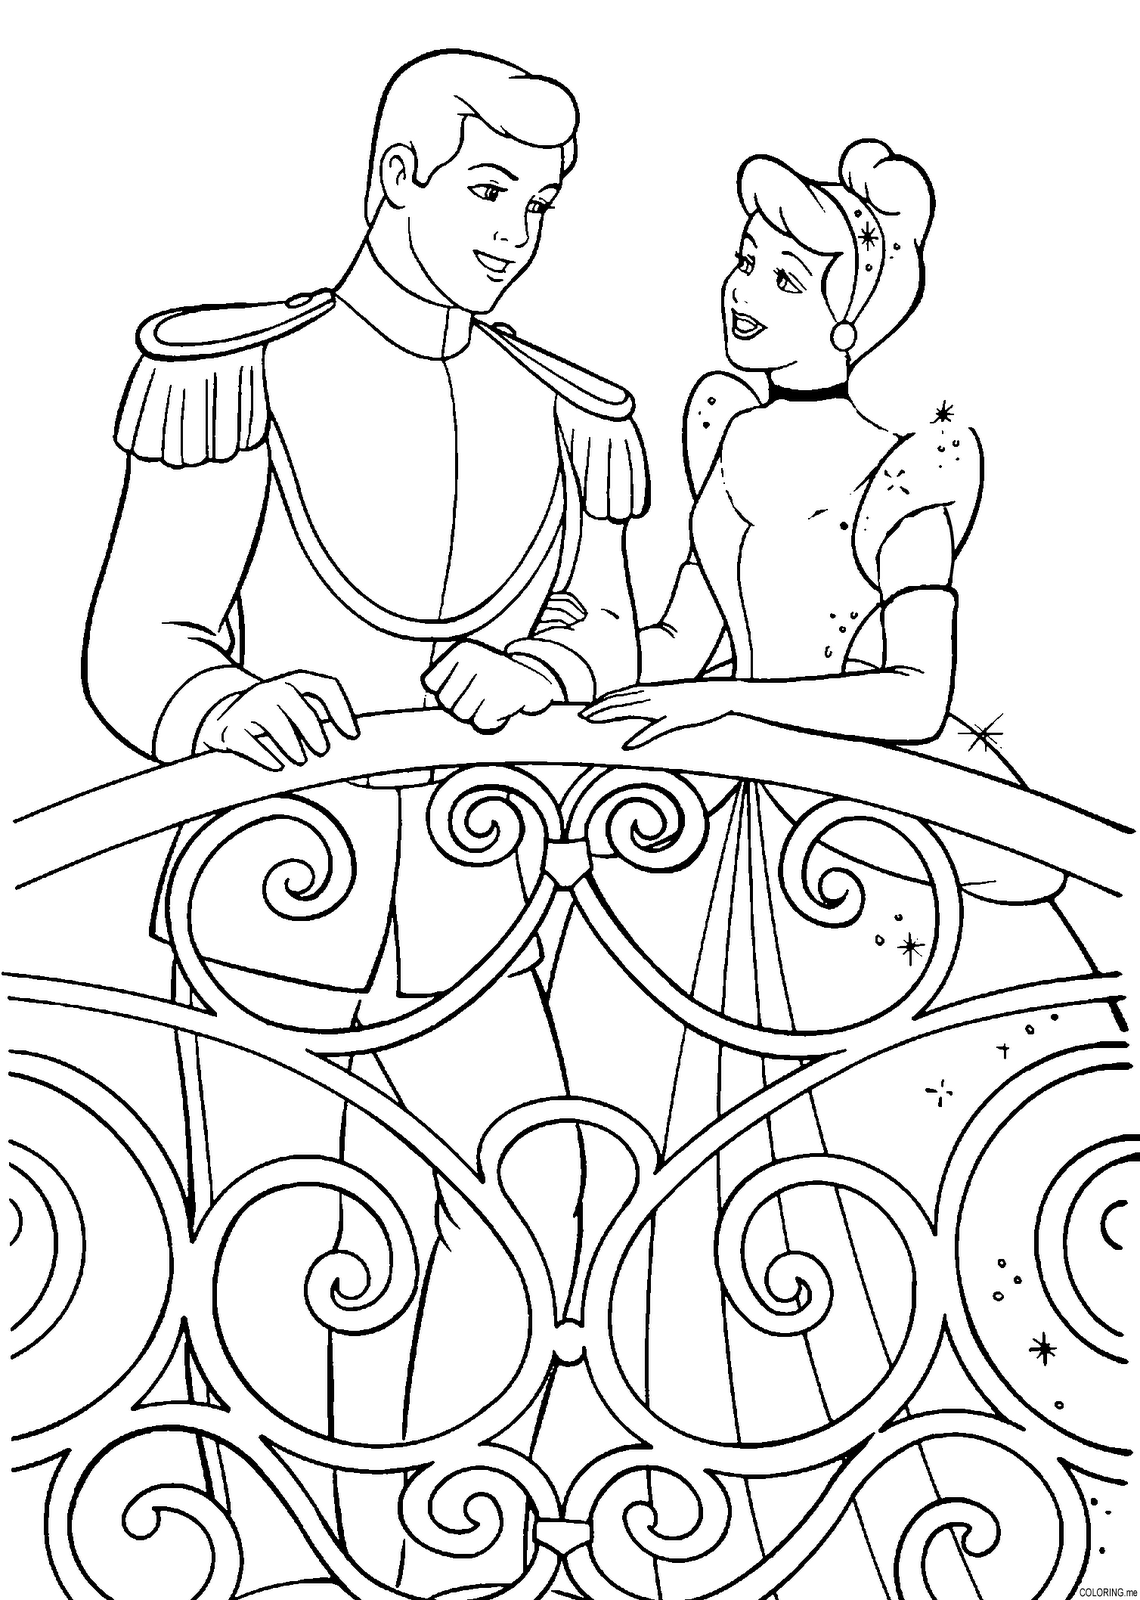 coloring pages for kids online owl coloring pages for adults free detailed owl coloring kids coloring pages online for